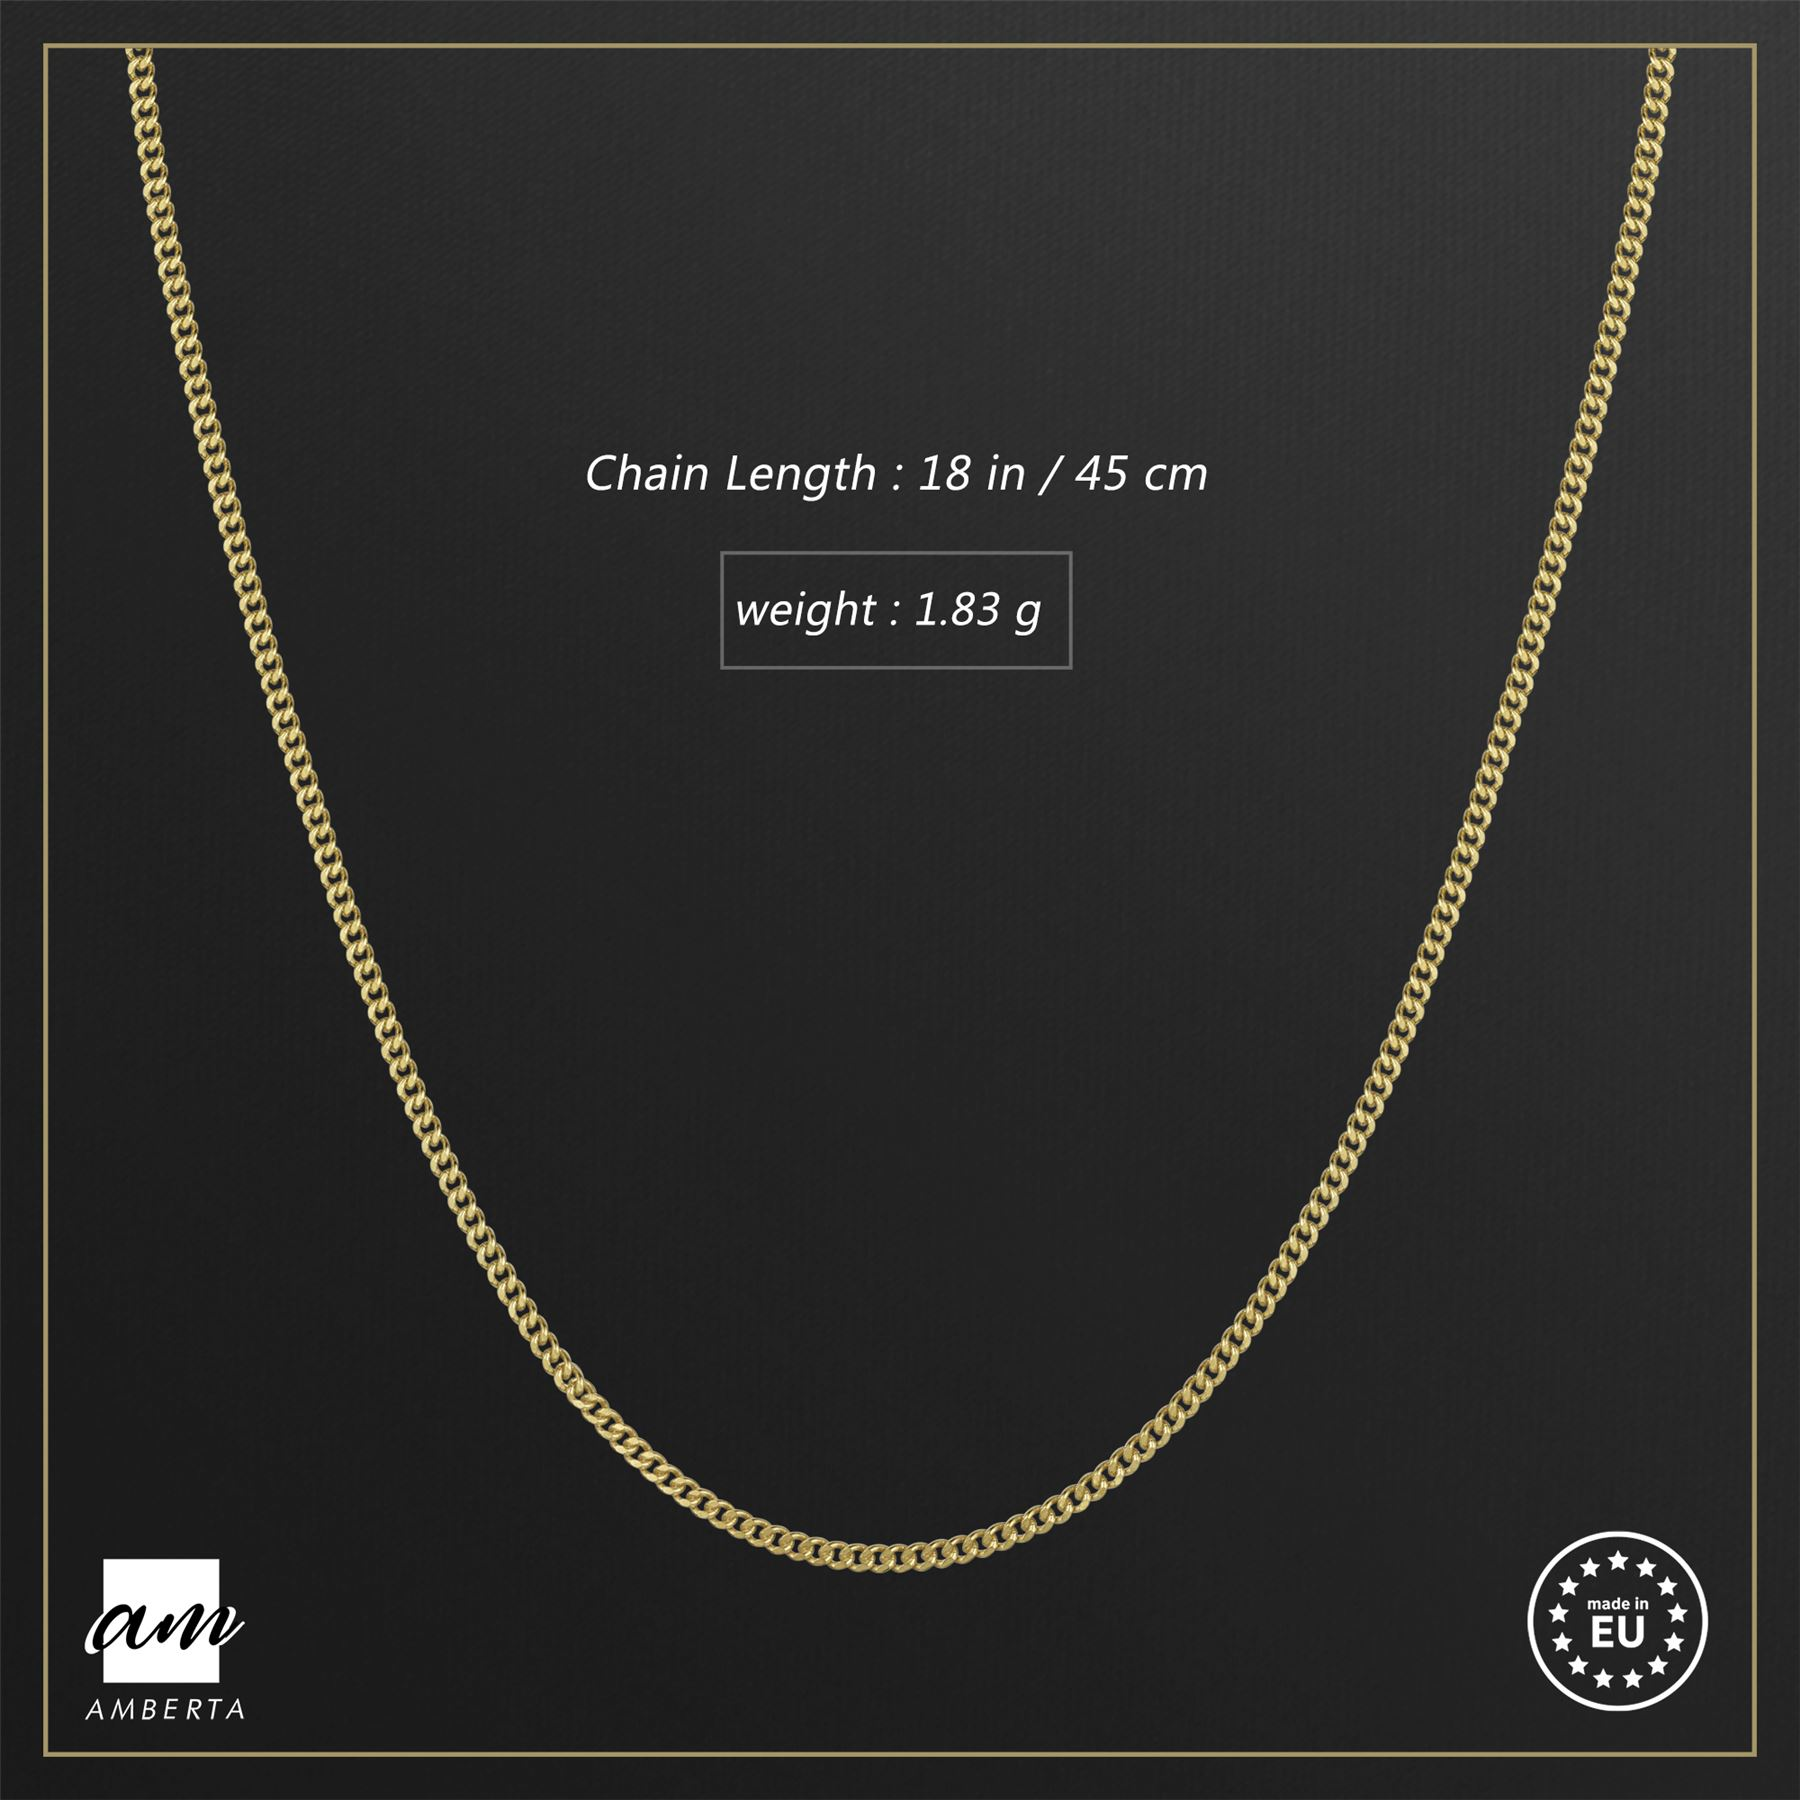 Amberta-Genuine-Gold-Plated-on-Real-925-Sterling-Silver-Necklace-Chain-Italy 縮圖 11